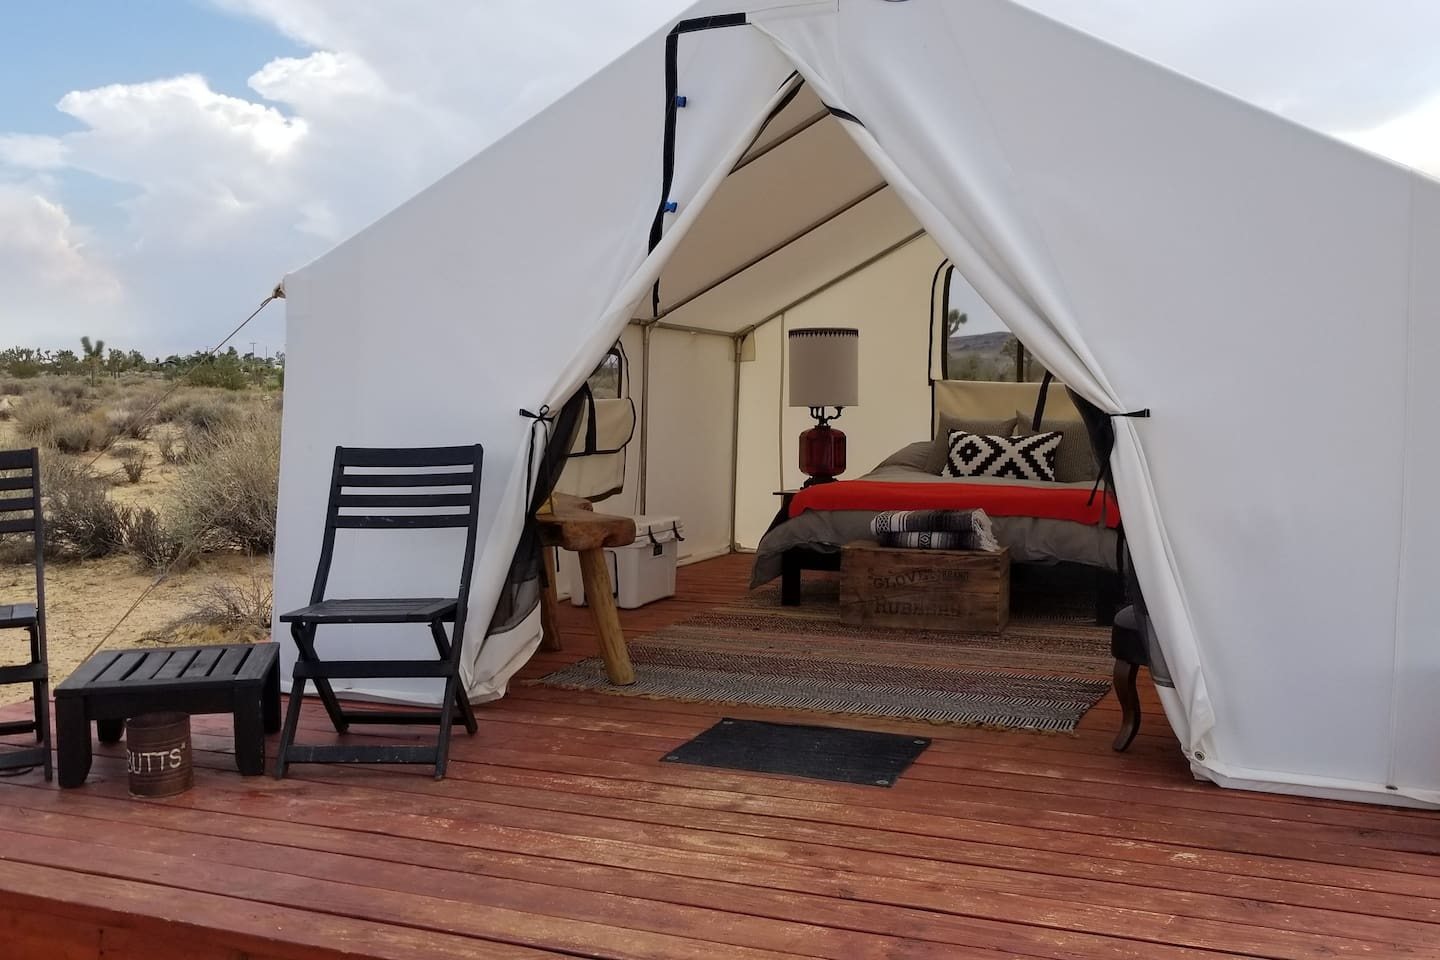 Joshua Tree Glamping Tent at Lazy Sky